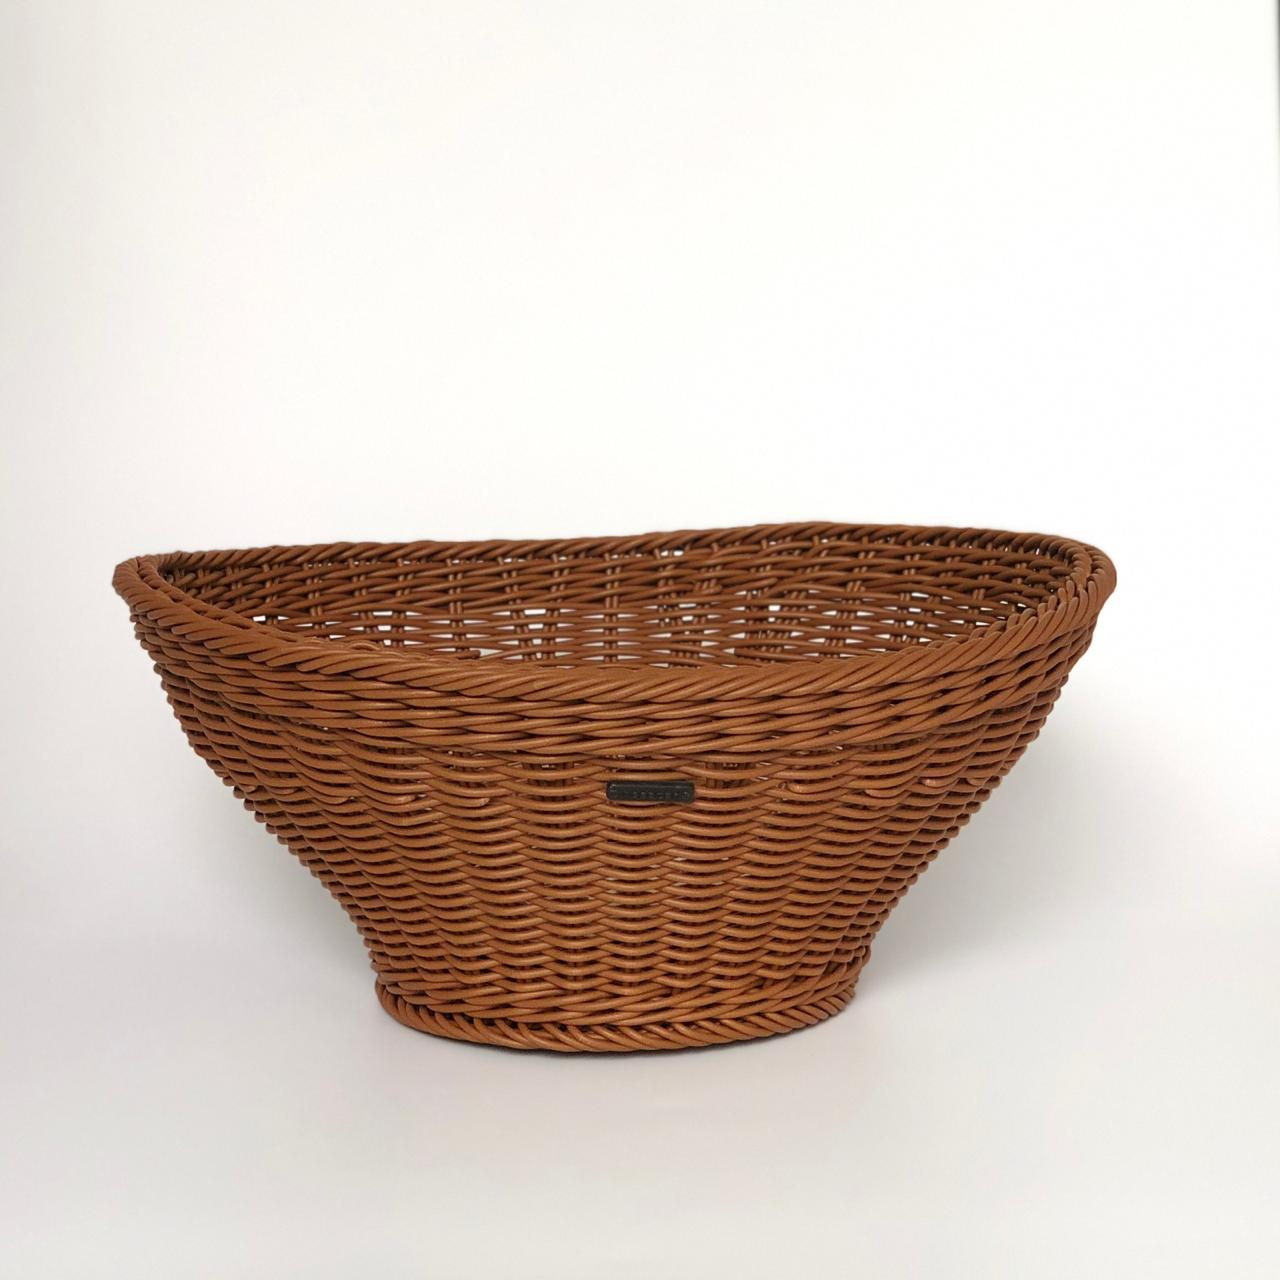 Exquisite Oval Braided Basket